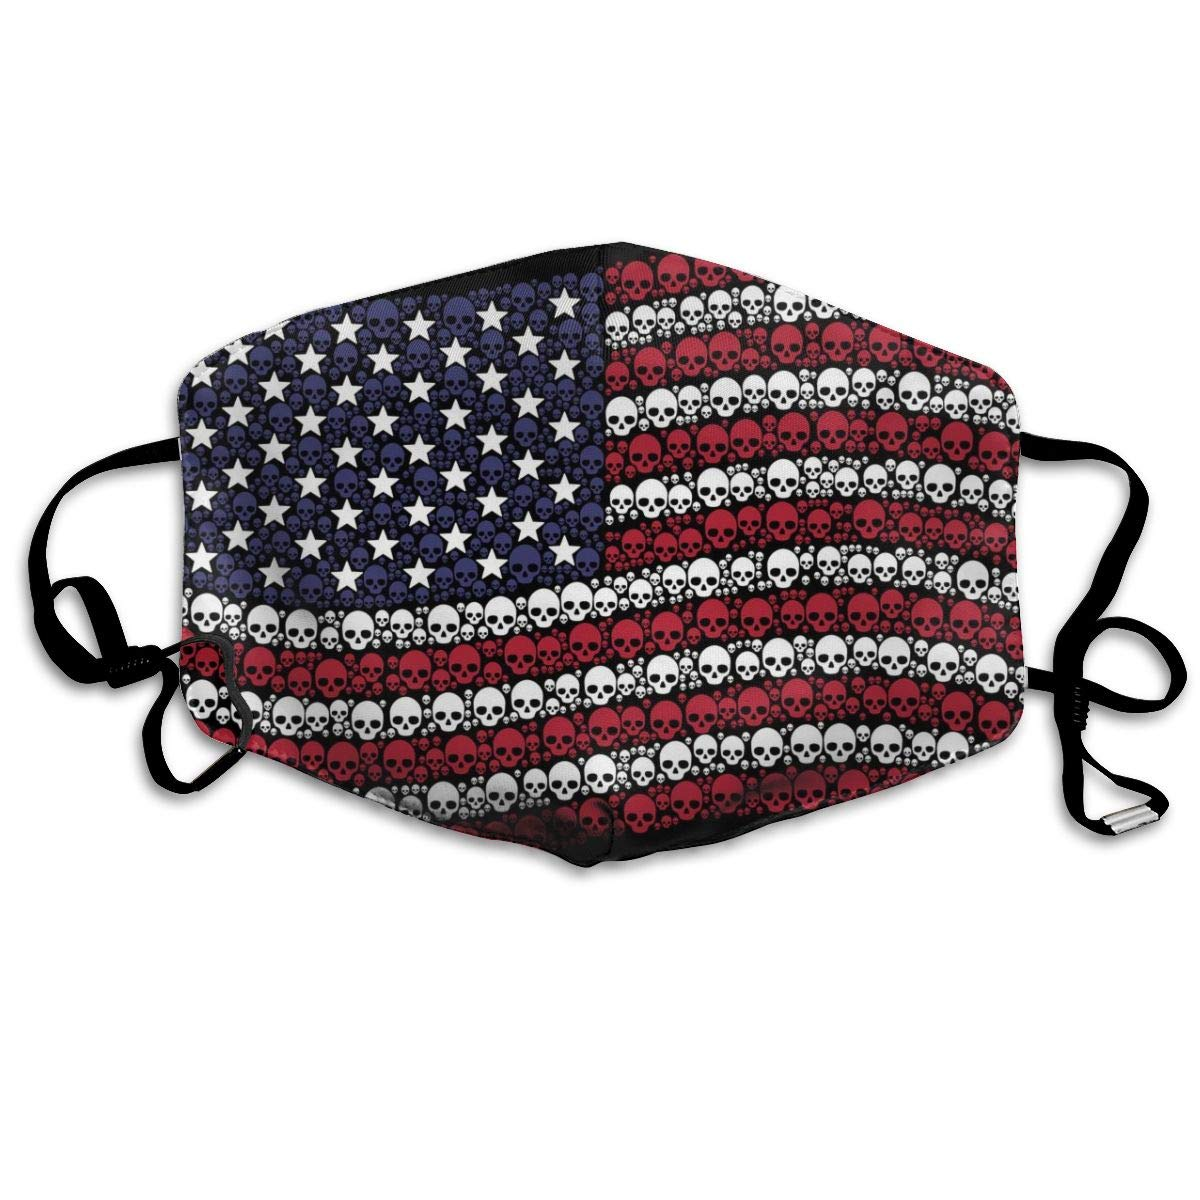 Reusable Comfy Breathable   Air - Outdoor Half Face Masks - Anti Saw Dust Masks - Half Face Mouth Mask For Man Woman Waving USA